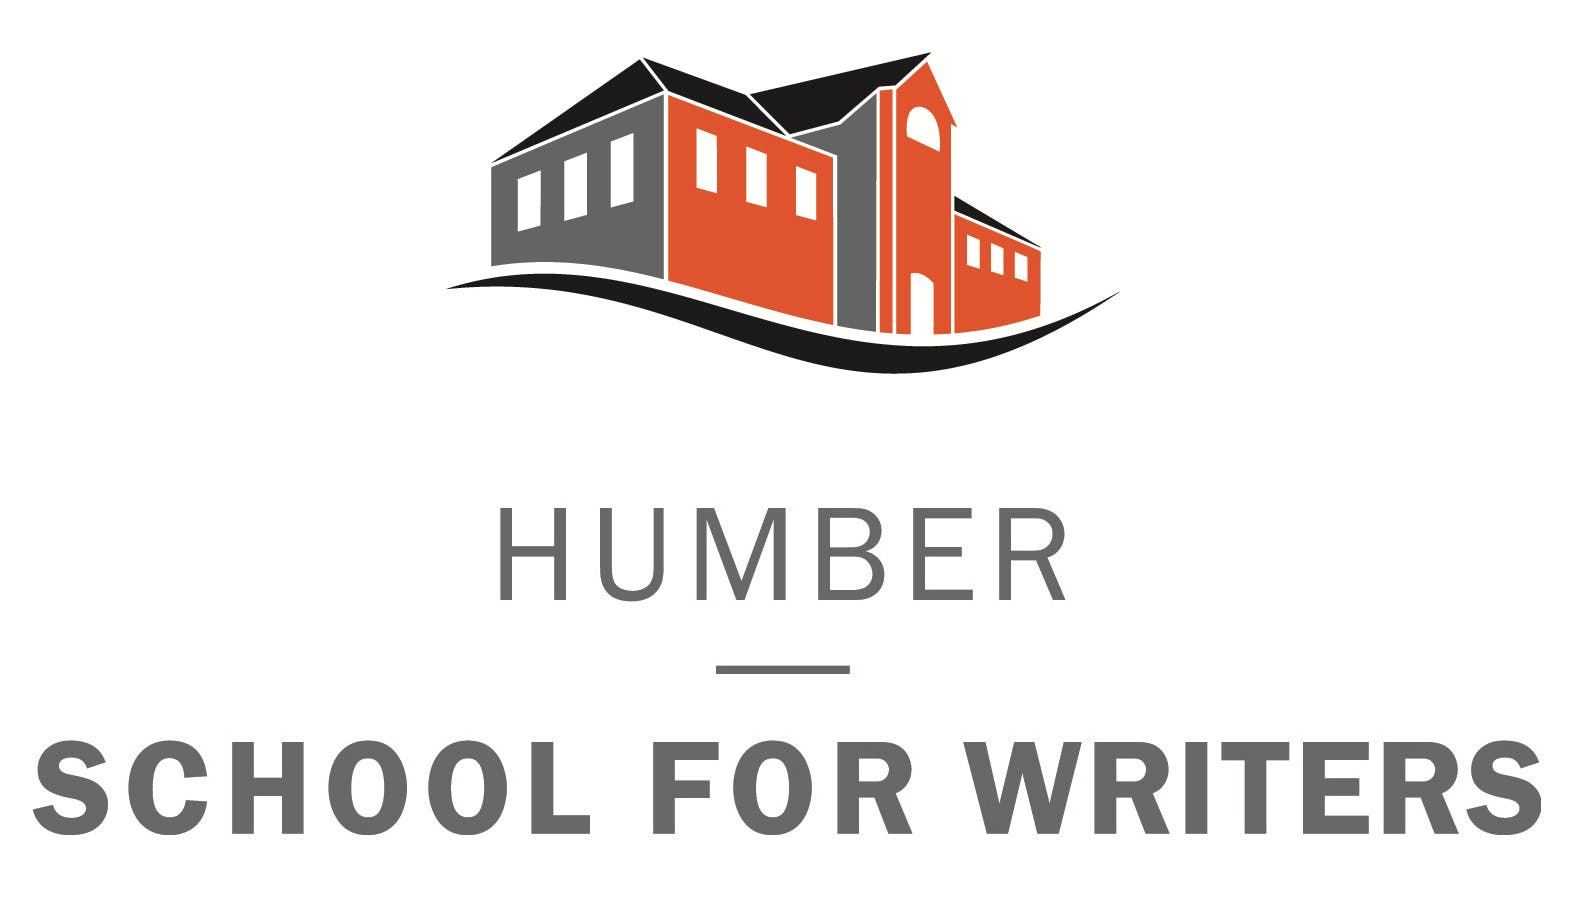 Humber School for Writers